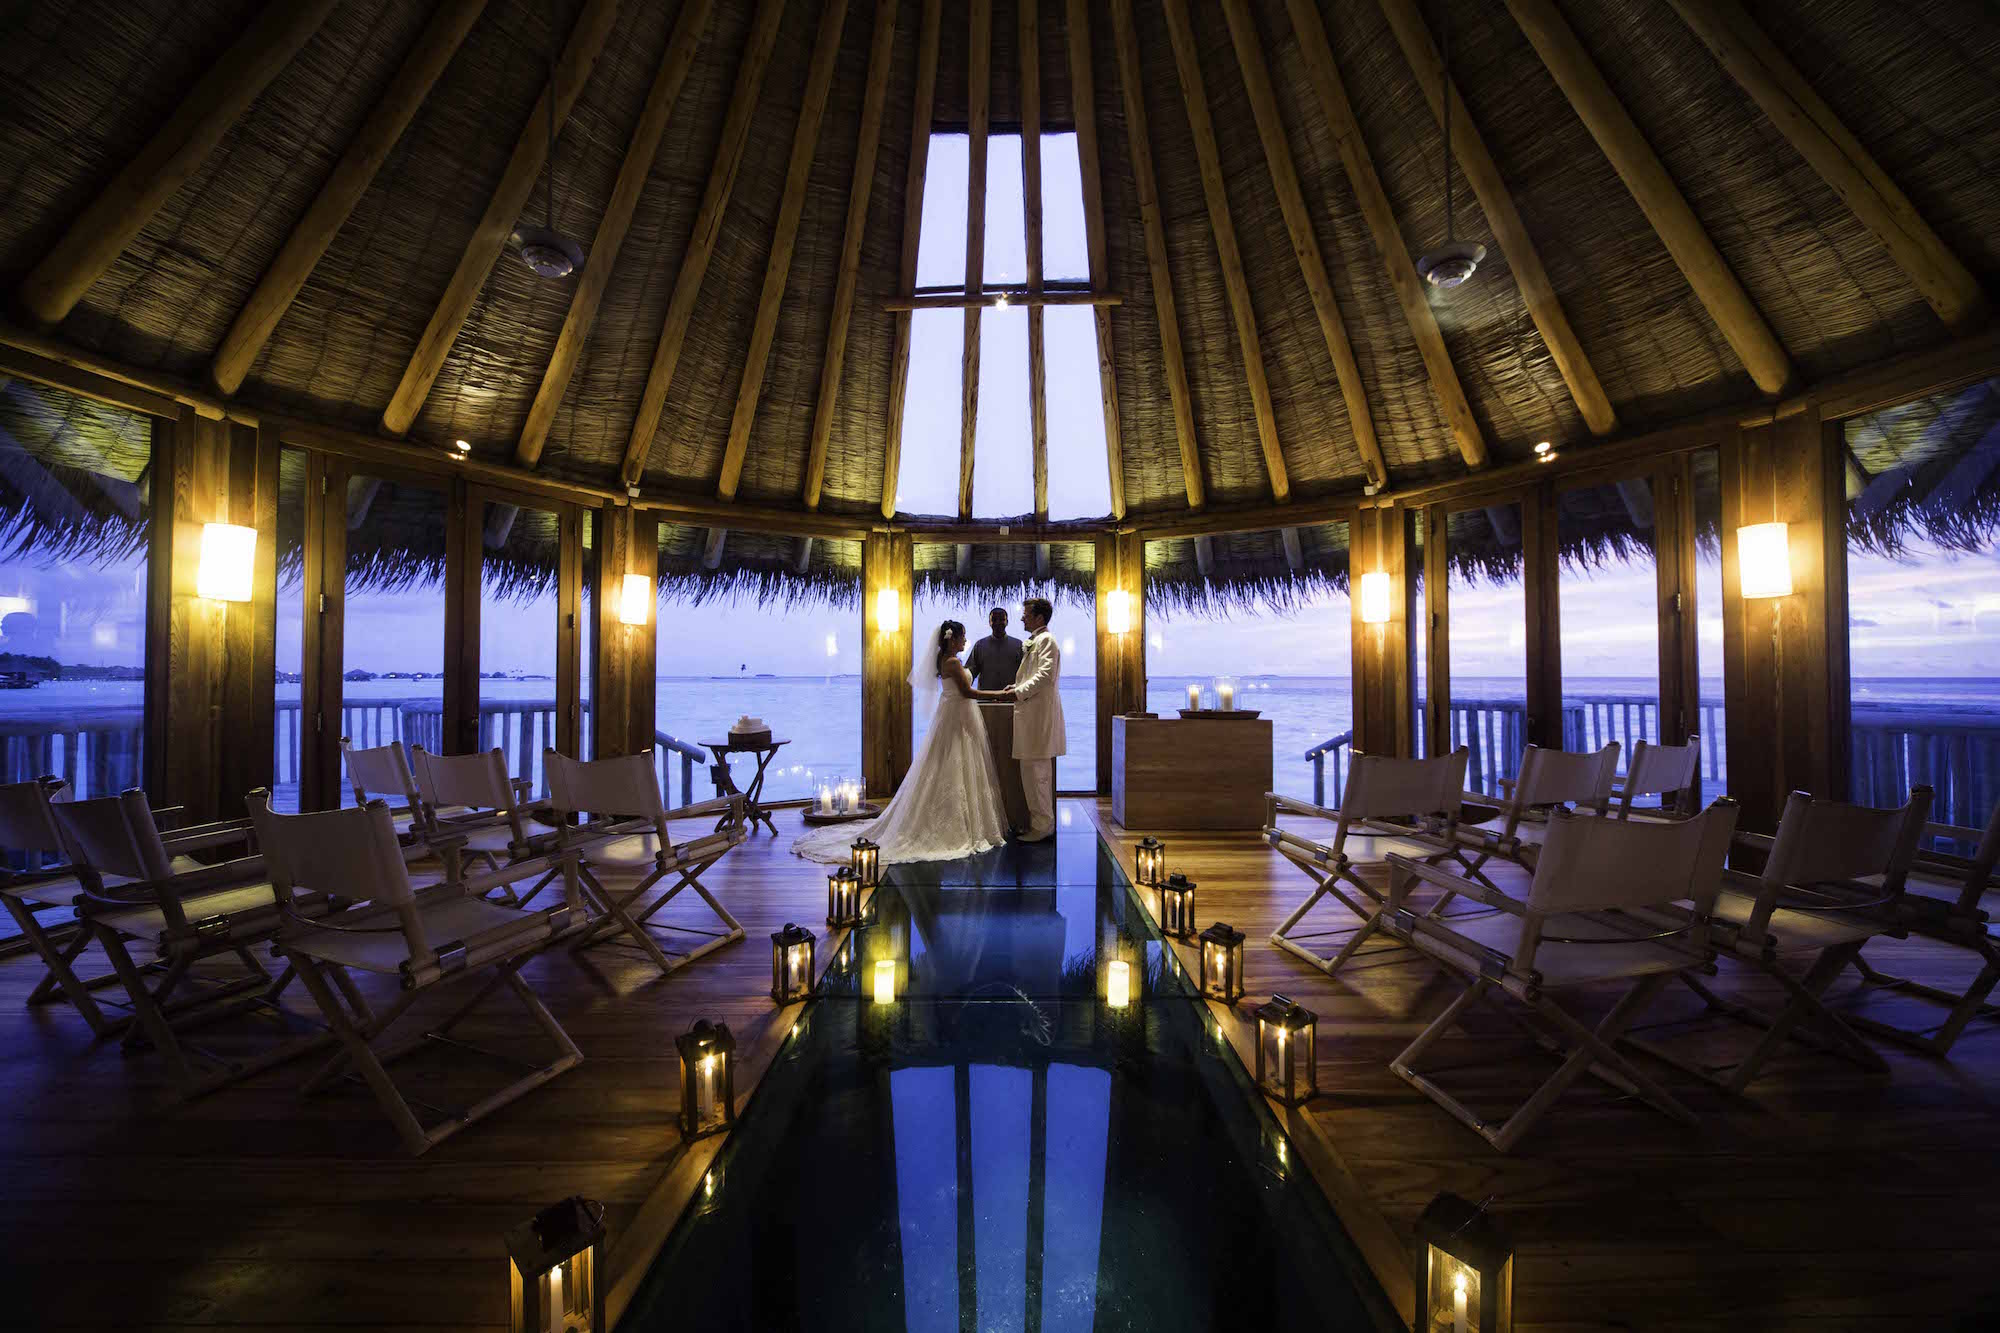 Gili Lankanfushi Resort Maldives - Wedding Chapel